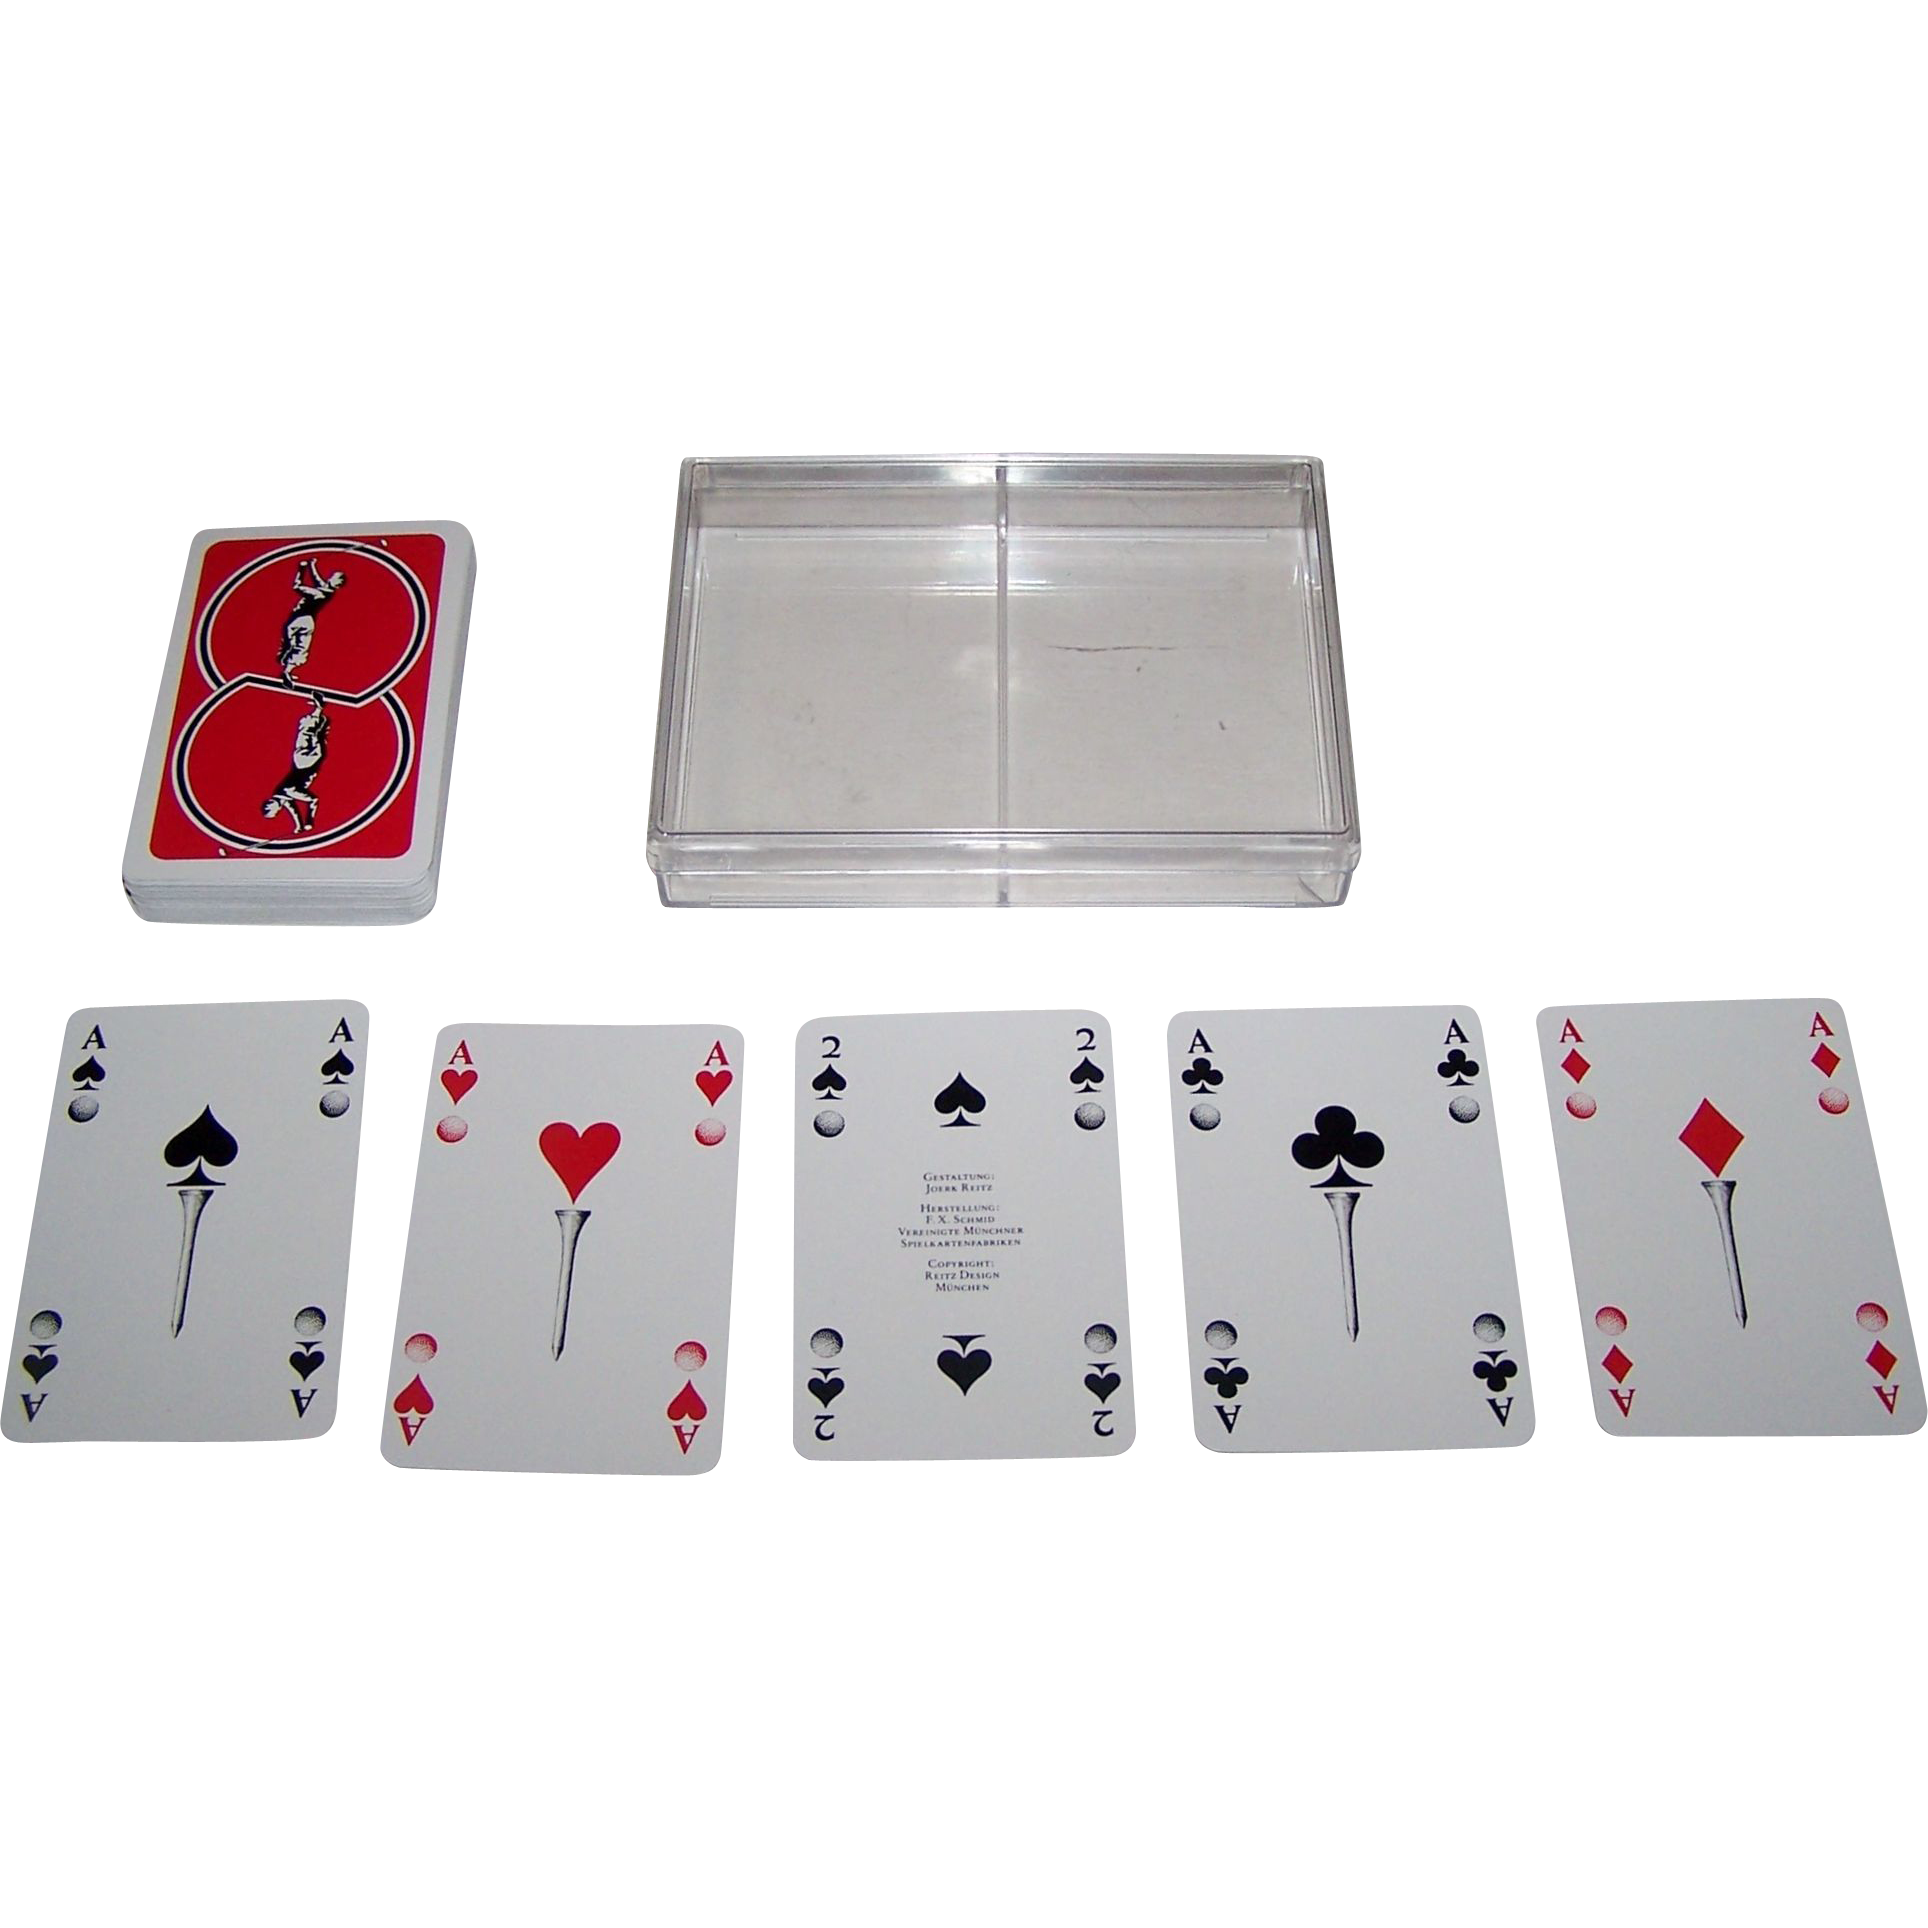 "Double Deck F.X. Schmid ""Golf"" Playing Cards, Joerk Reitz Designs"